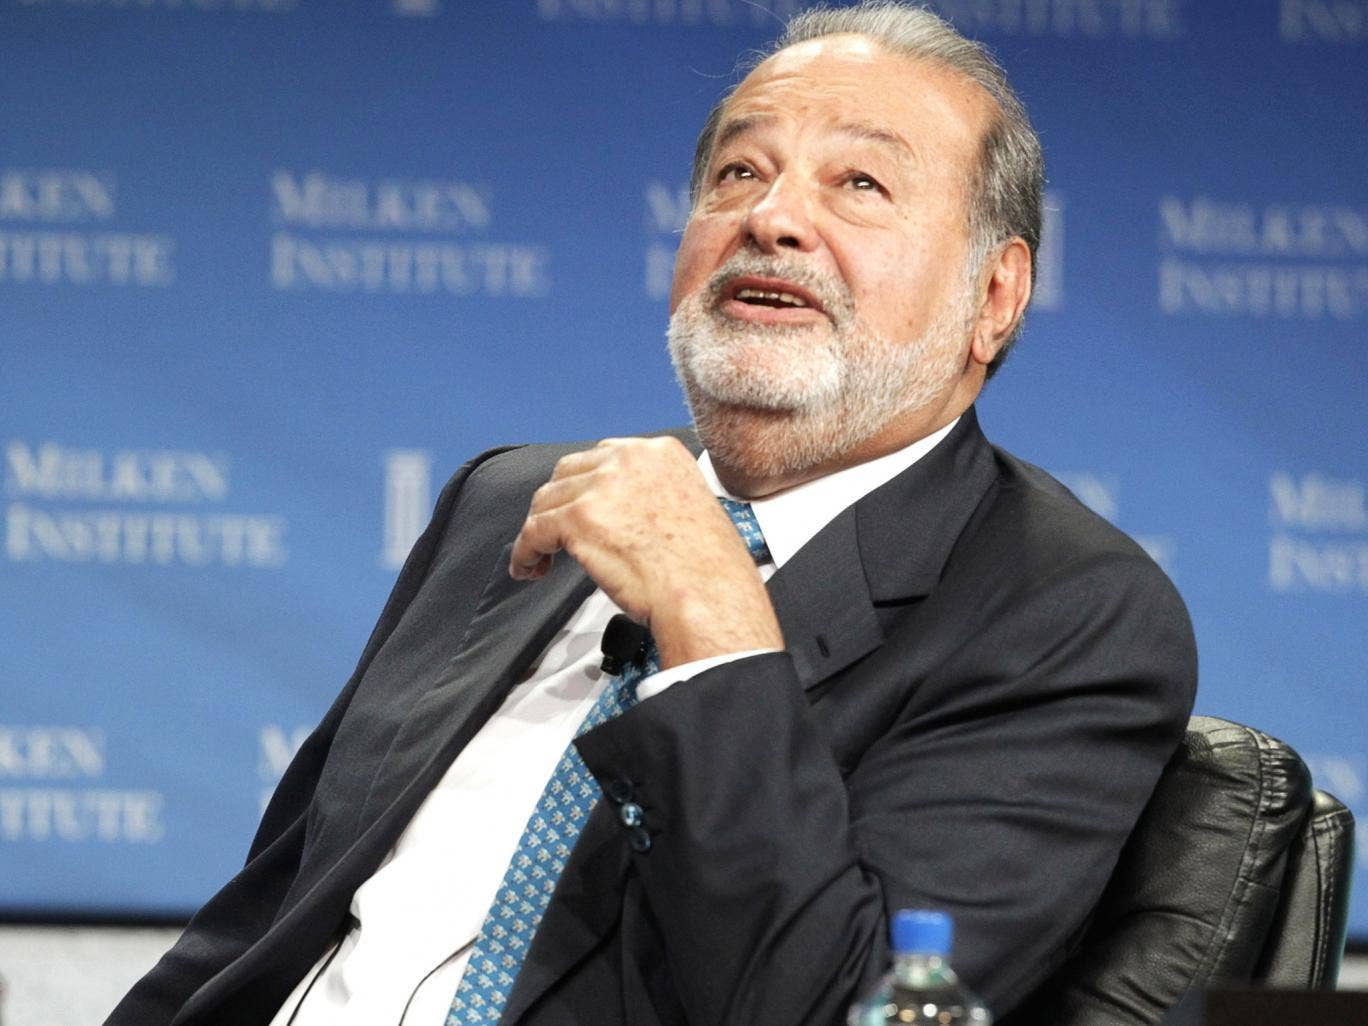 Carlos Slim has built a telecoms and retail empire that spans the US and most of Latin America